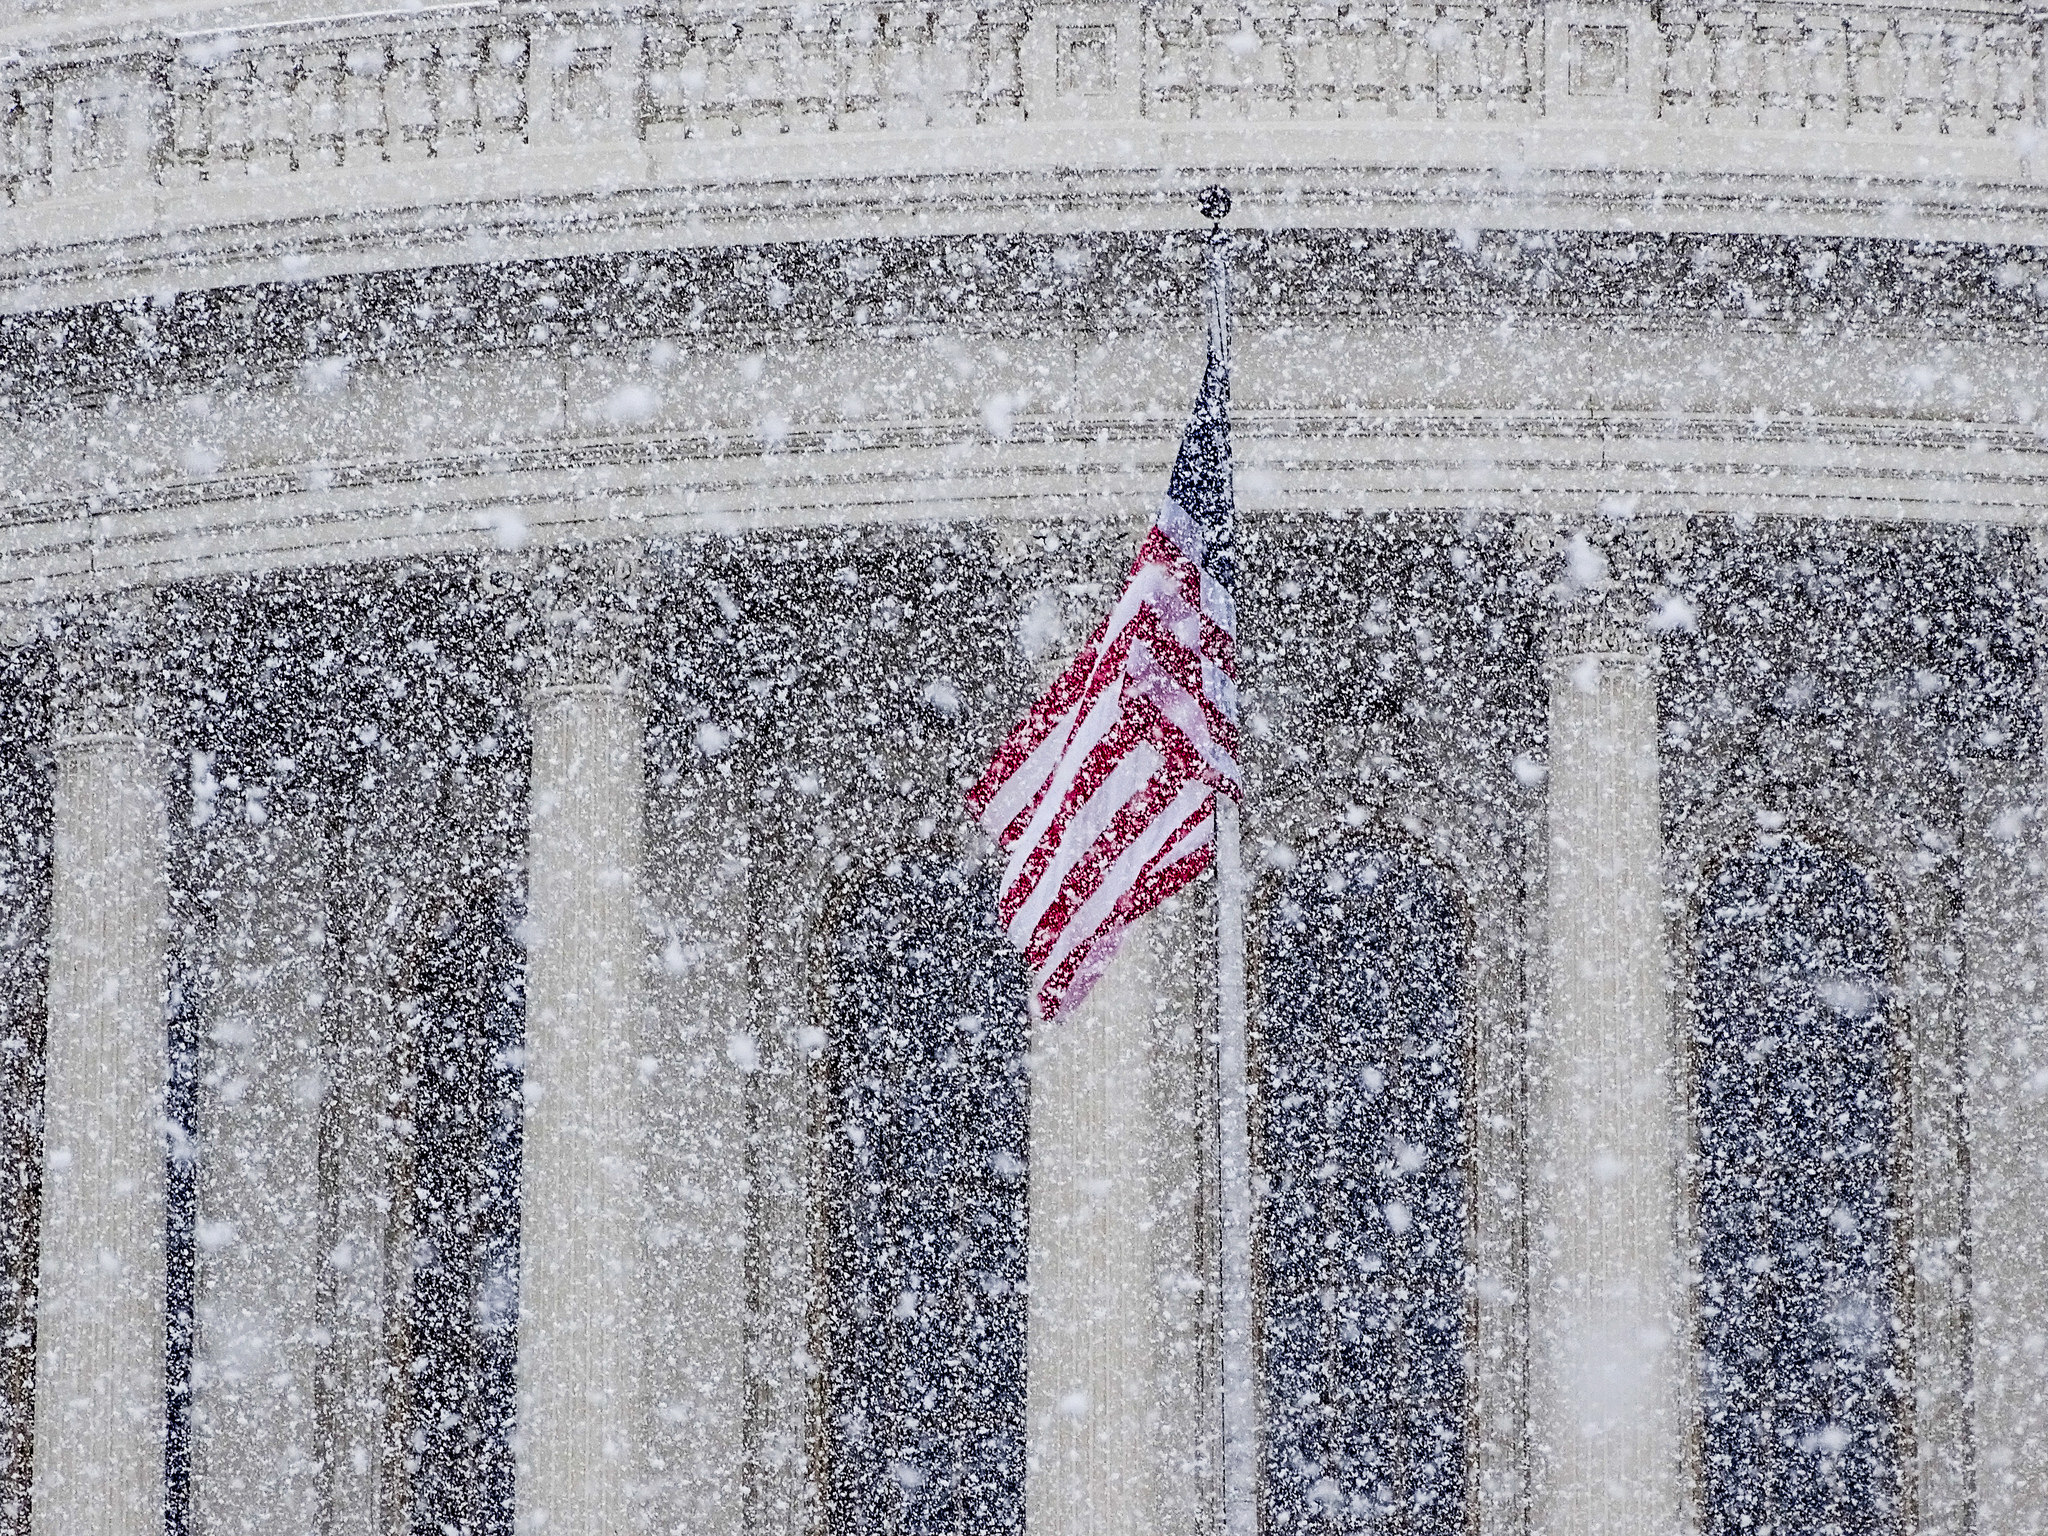 U.S. flag flies at the U.S. Capitol in a snow storm. Photo by Victoria Pickering, Creative Commons license, from Flickr